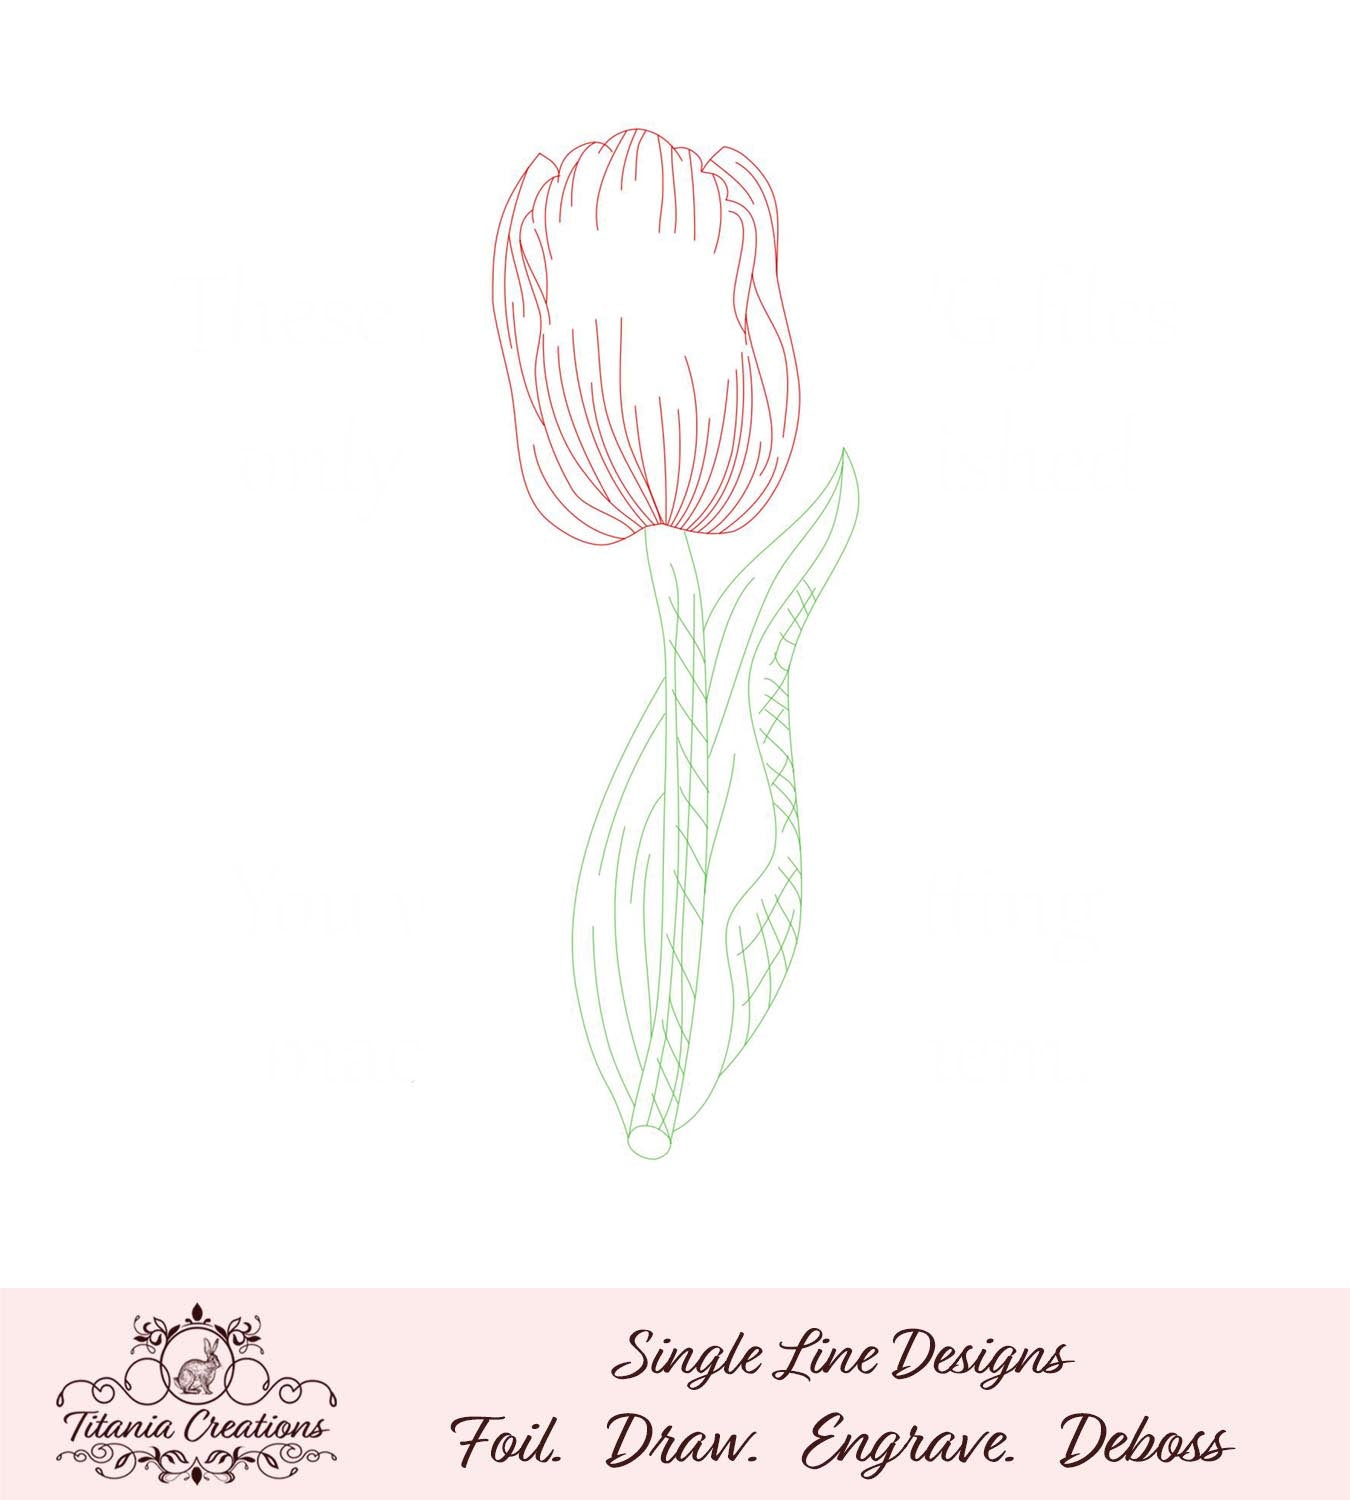 Single Line Sketch Tulip Foil Quill SVG